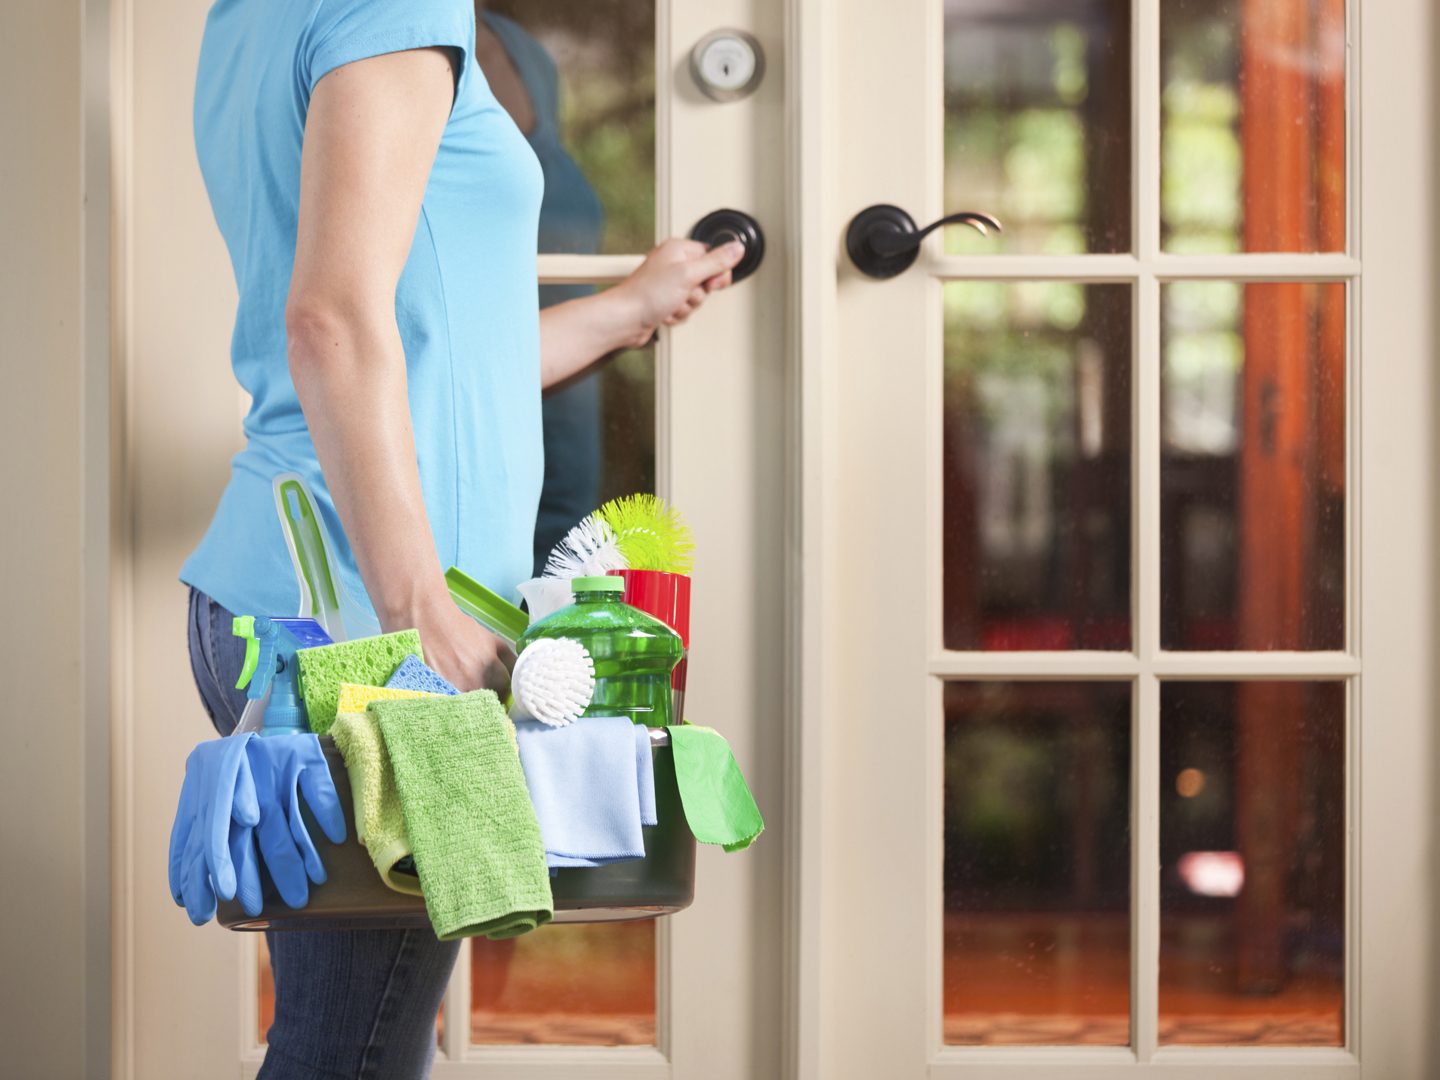 Are Household Cleaners Harmful? - DrWeil.com